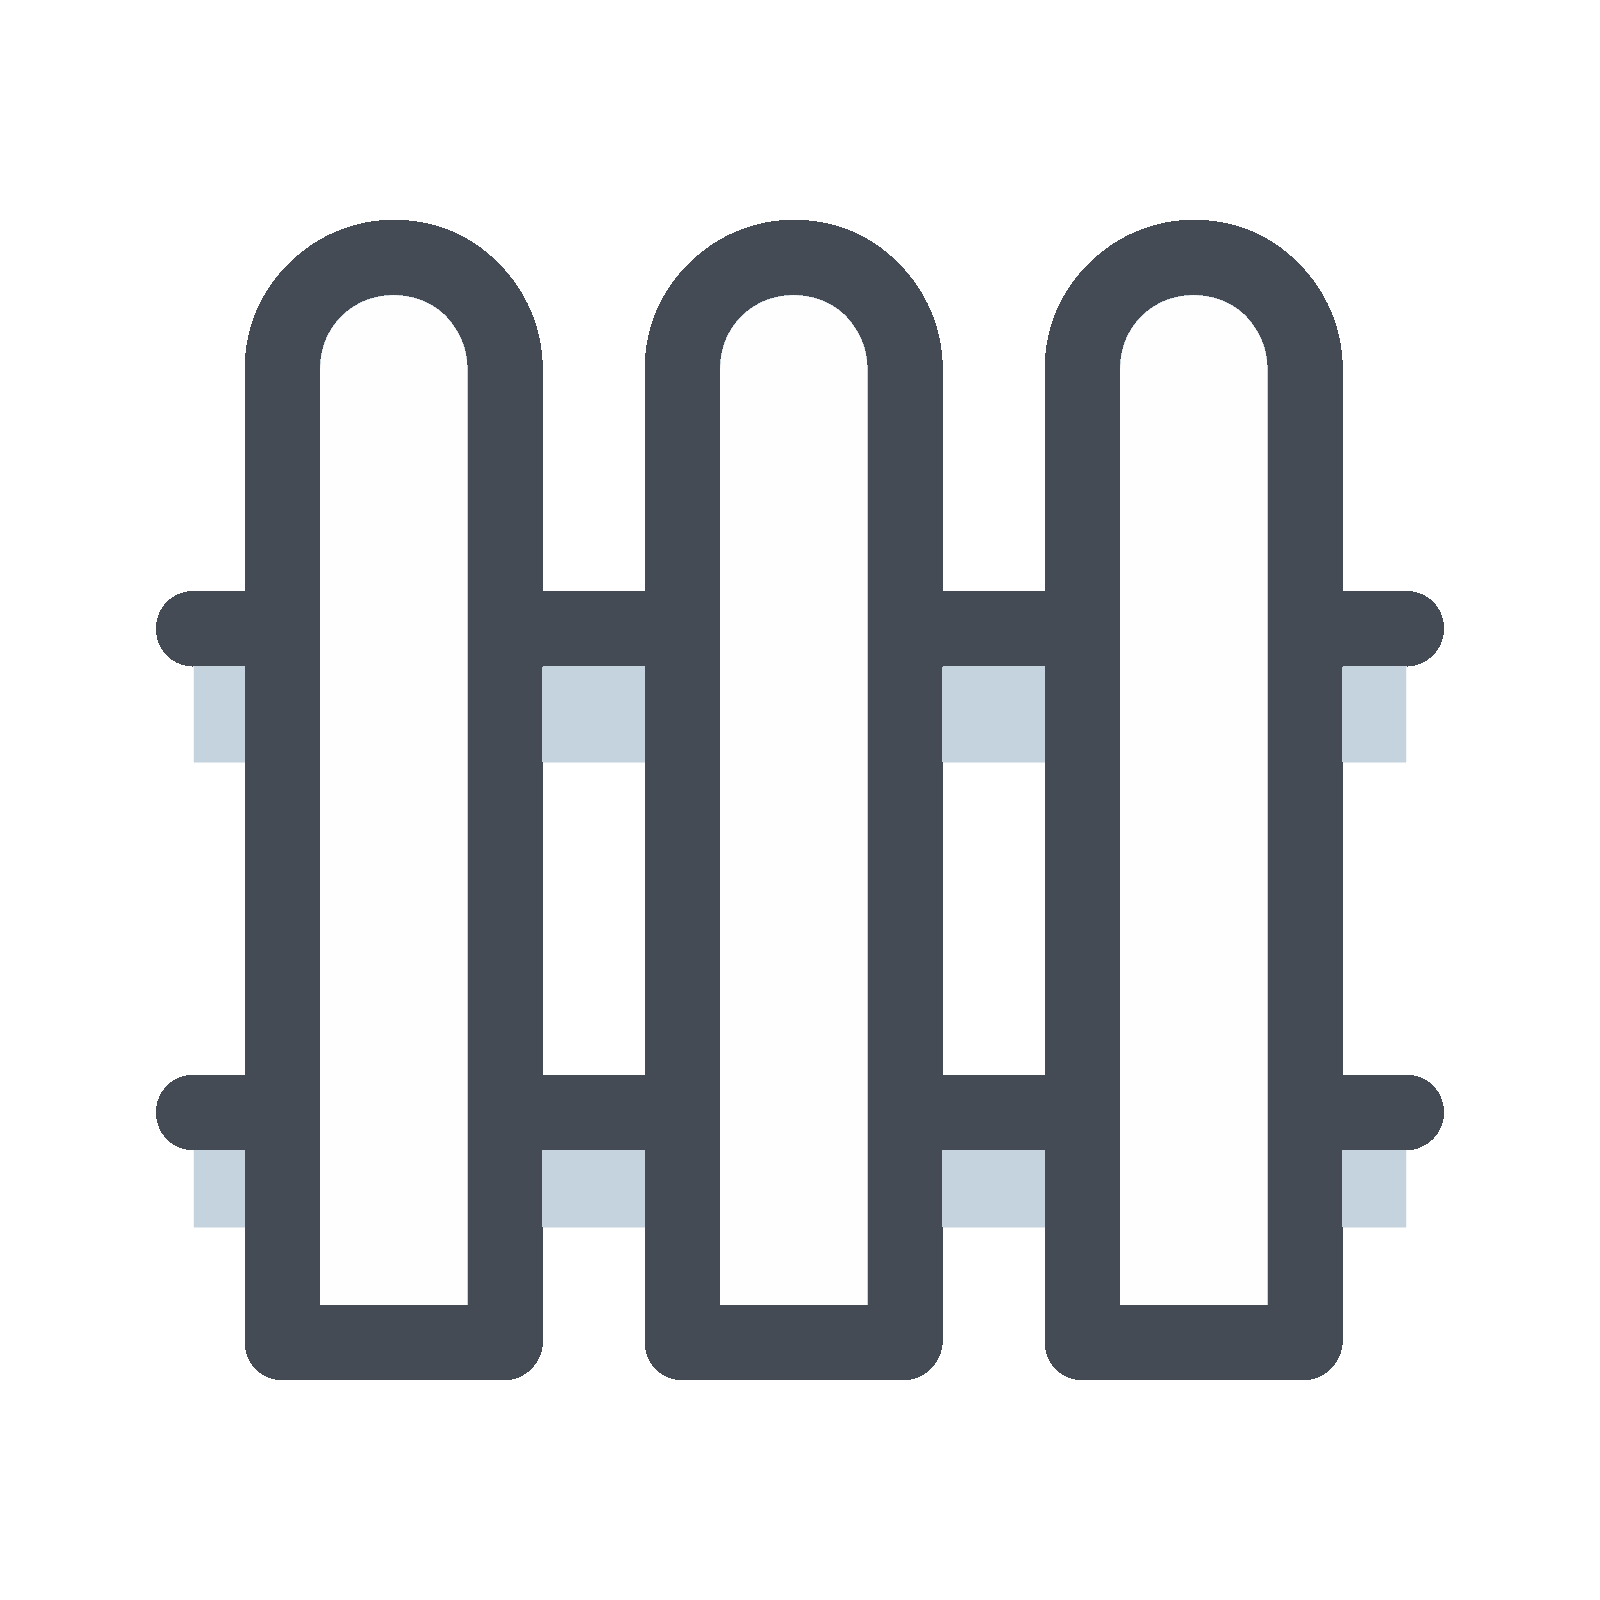 Fence svg security. House icon free download